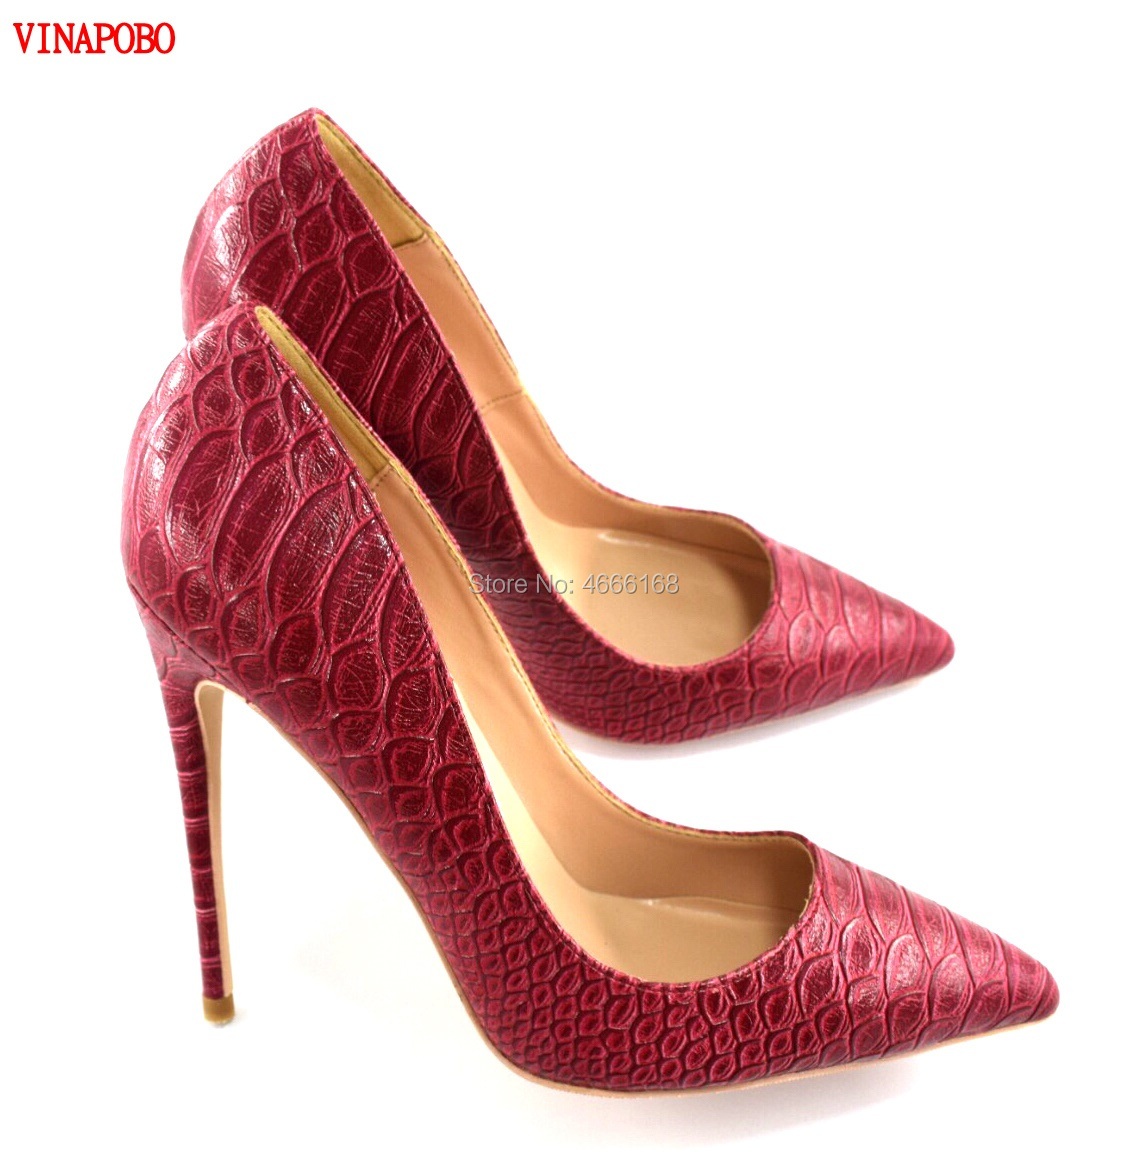 Vinapobo Brand Red Snake Pattern Print pumps Sexy Women Pointed Toe Stiletto High Heels Ladies Slip